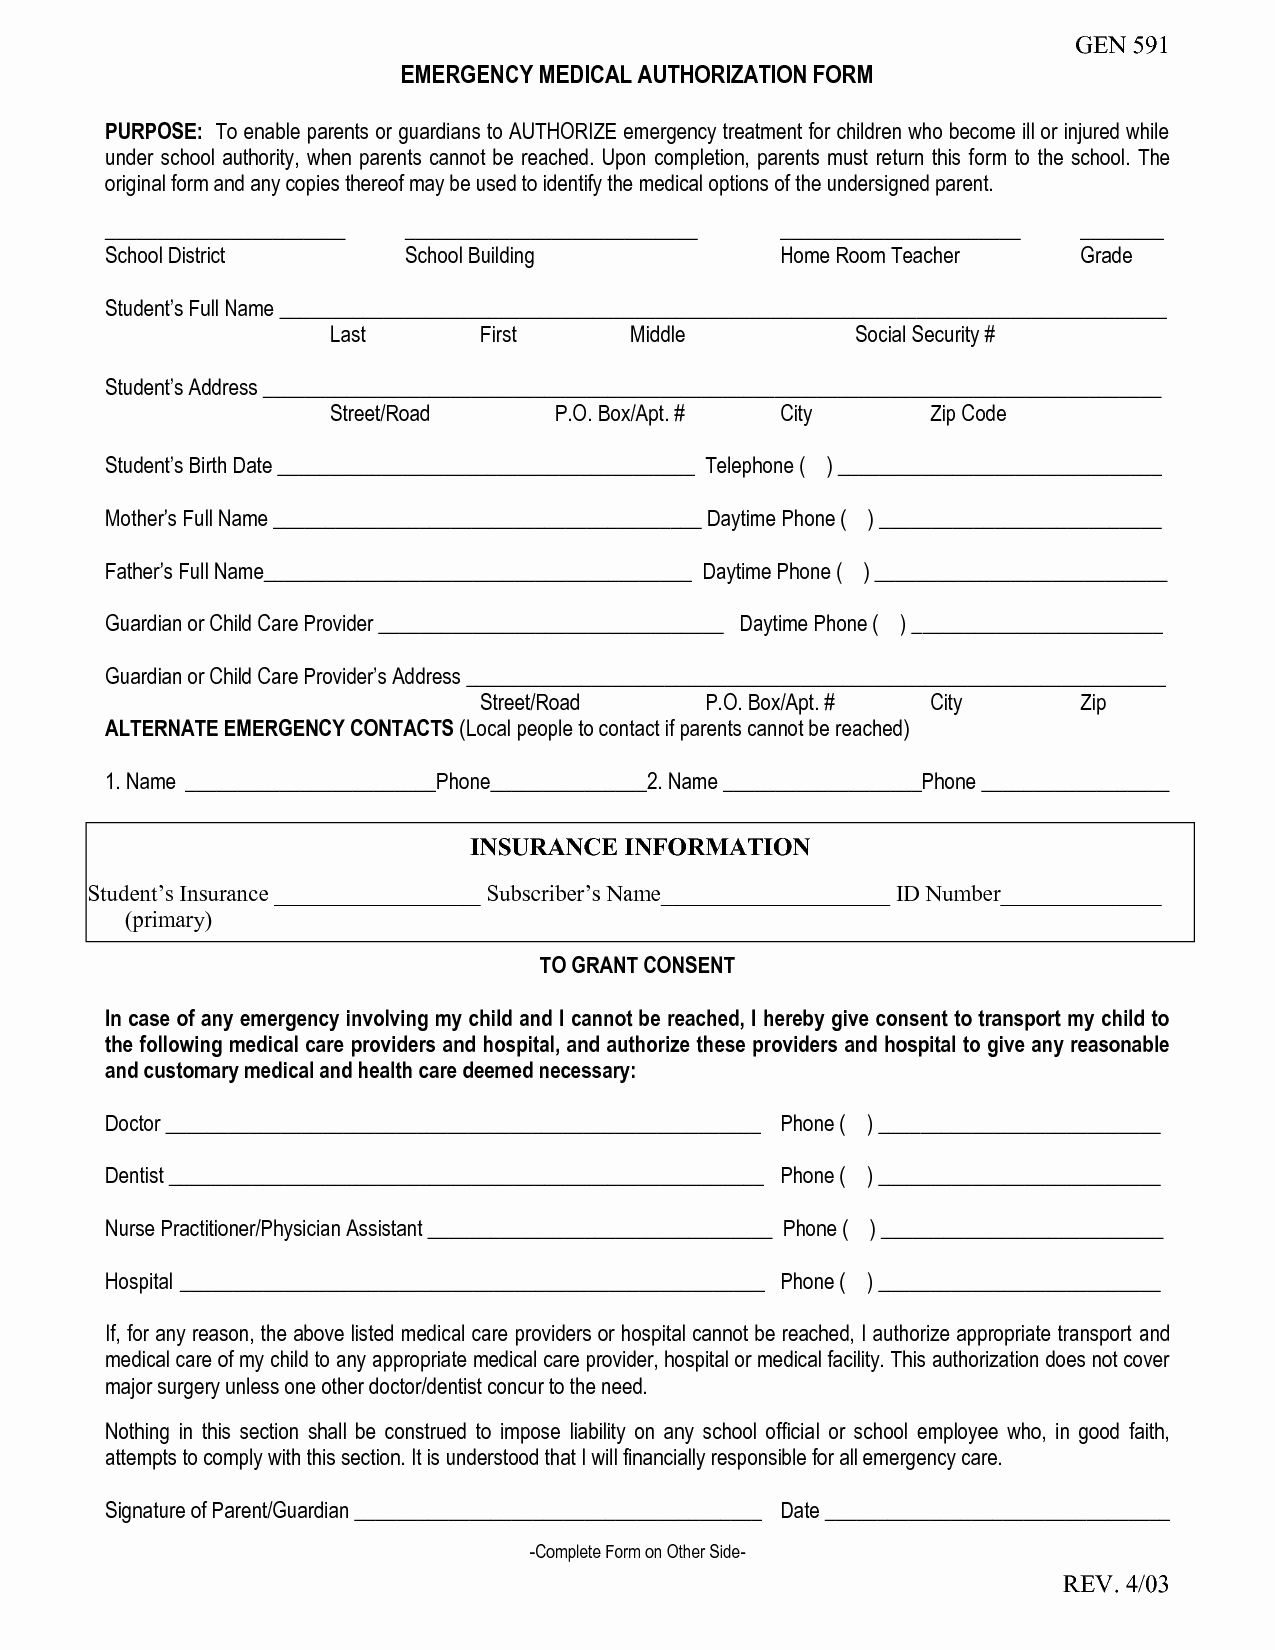 Emergency Medical form Template Awesome Emergency Medical form Template – Medical form Templates